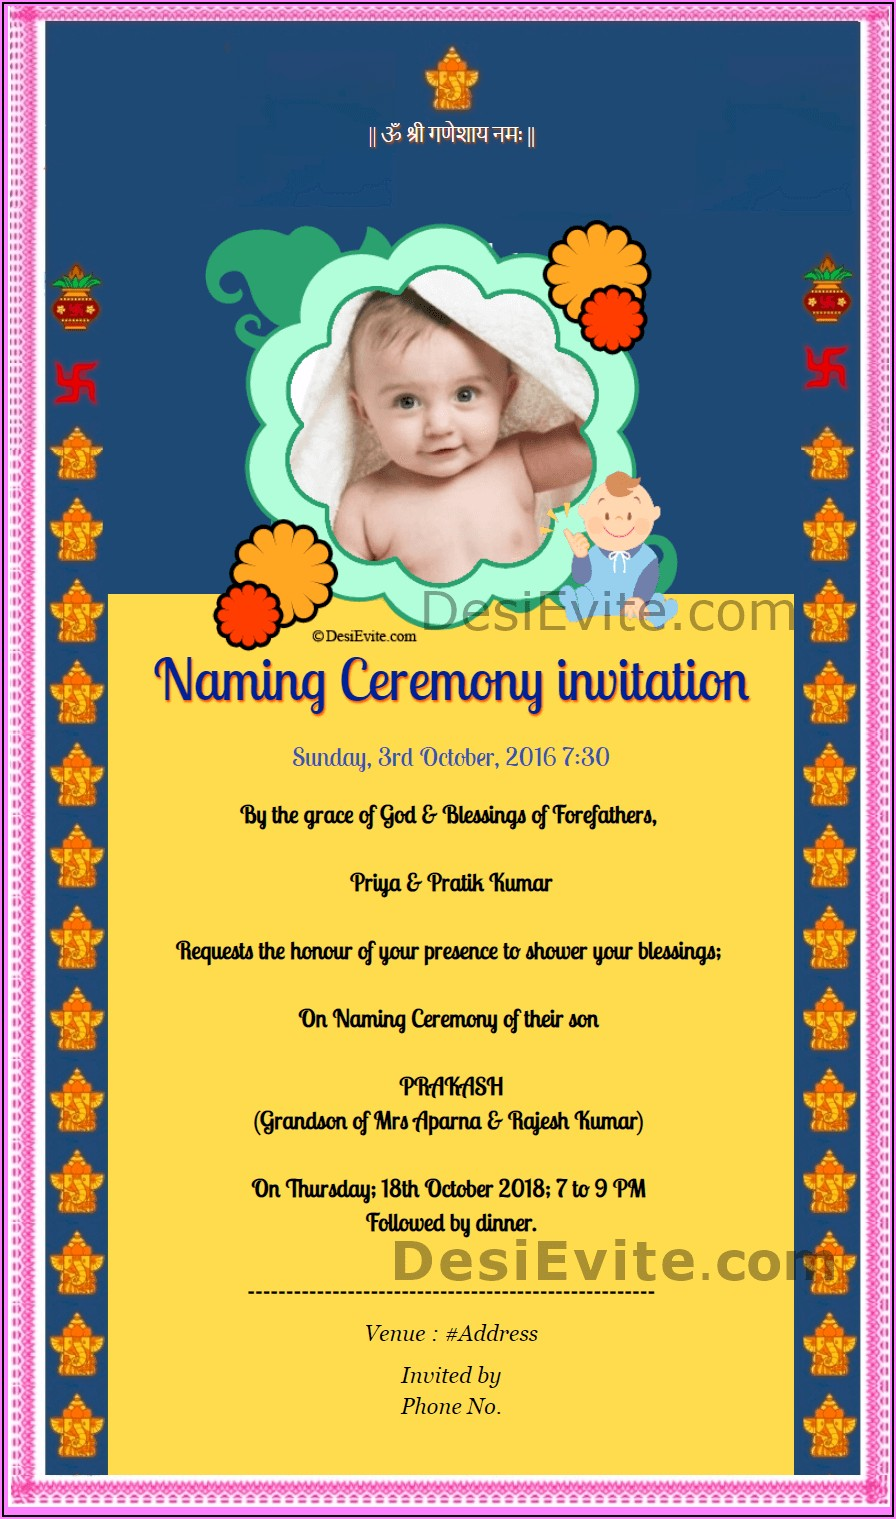 Naming Ceremony Invitation Wordings In English